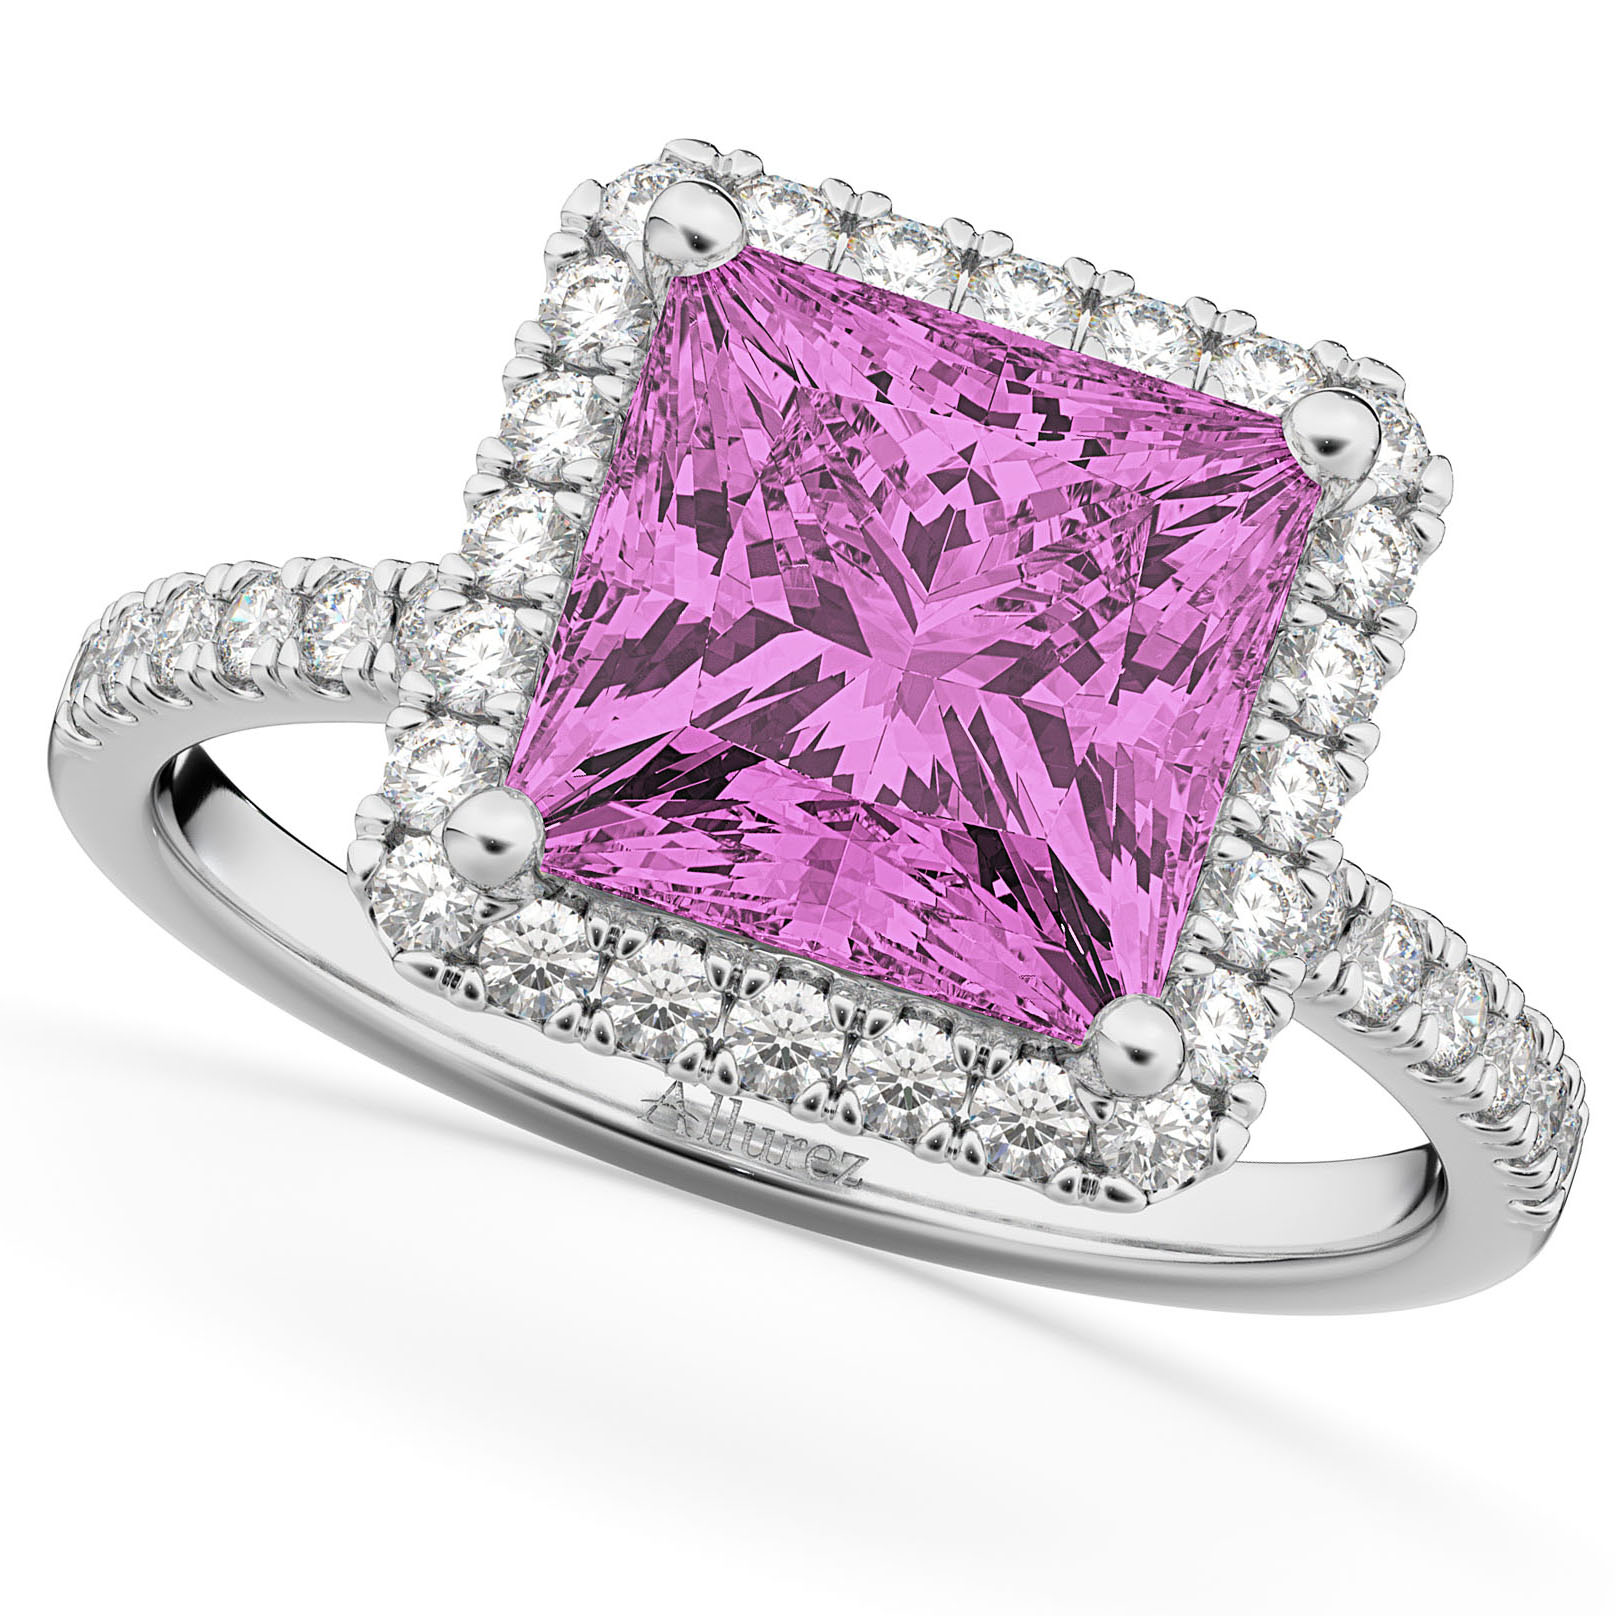 Princess Cut Halo Pink Sapphire & Diamond Engagement Ring 14K White ...